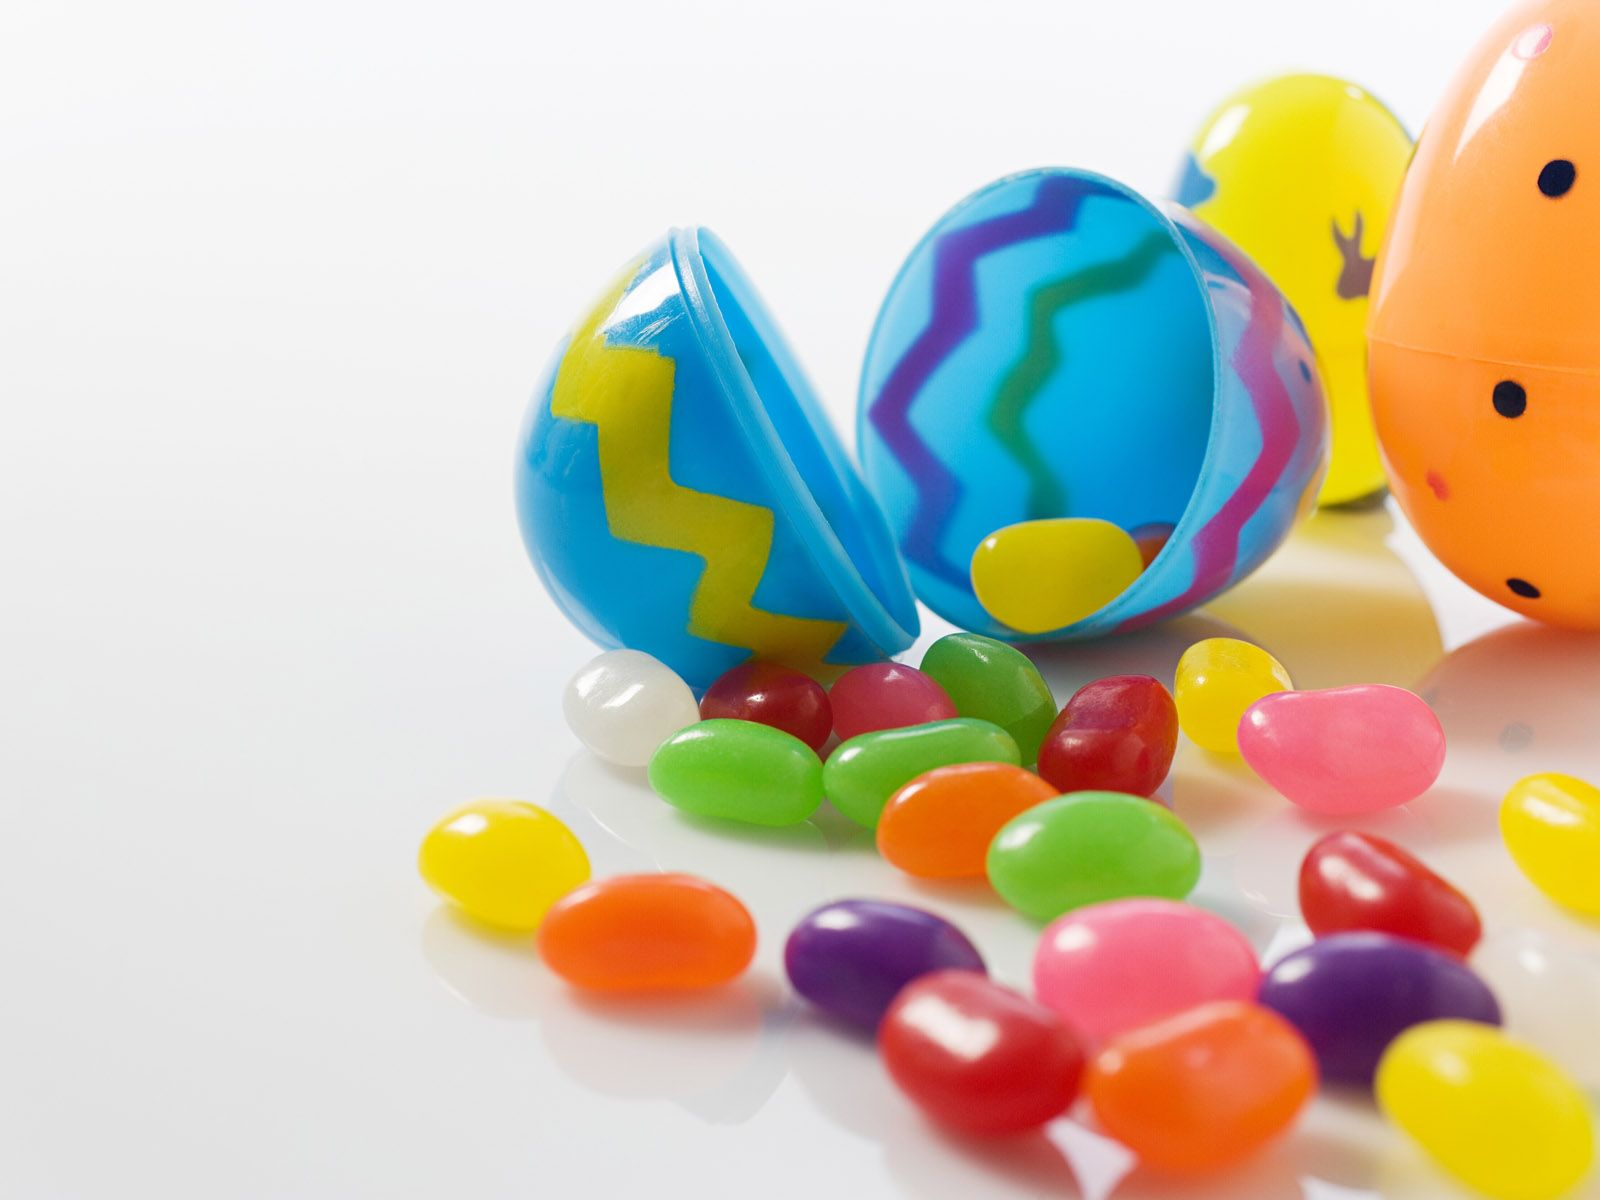 Android 4.1 and 4.3 Jellybean Easter Egg